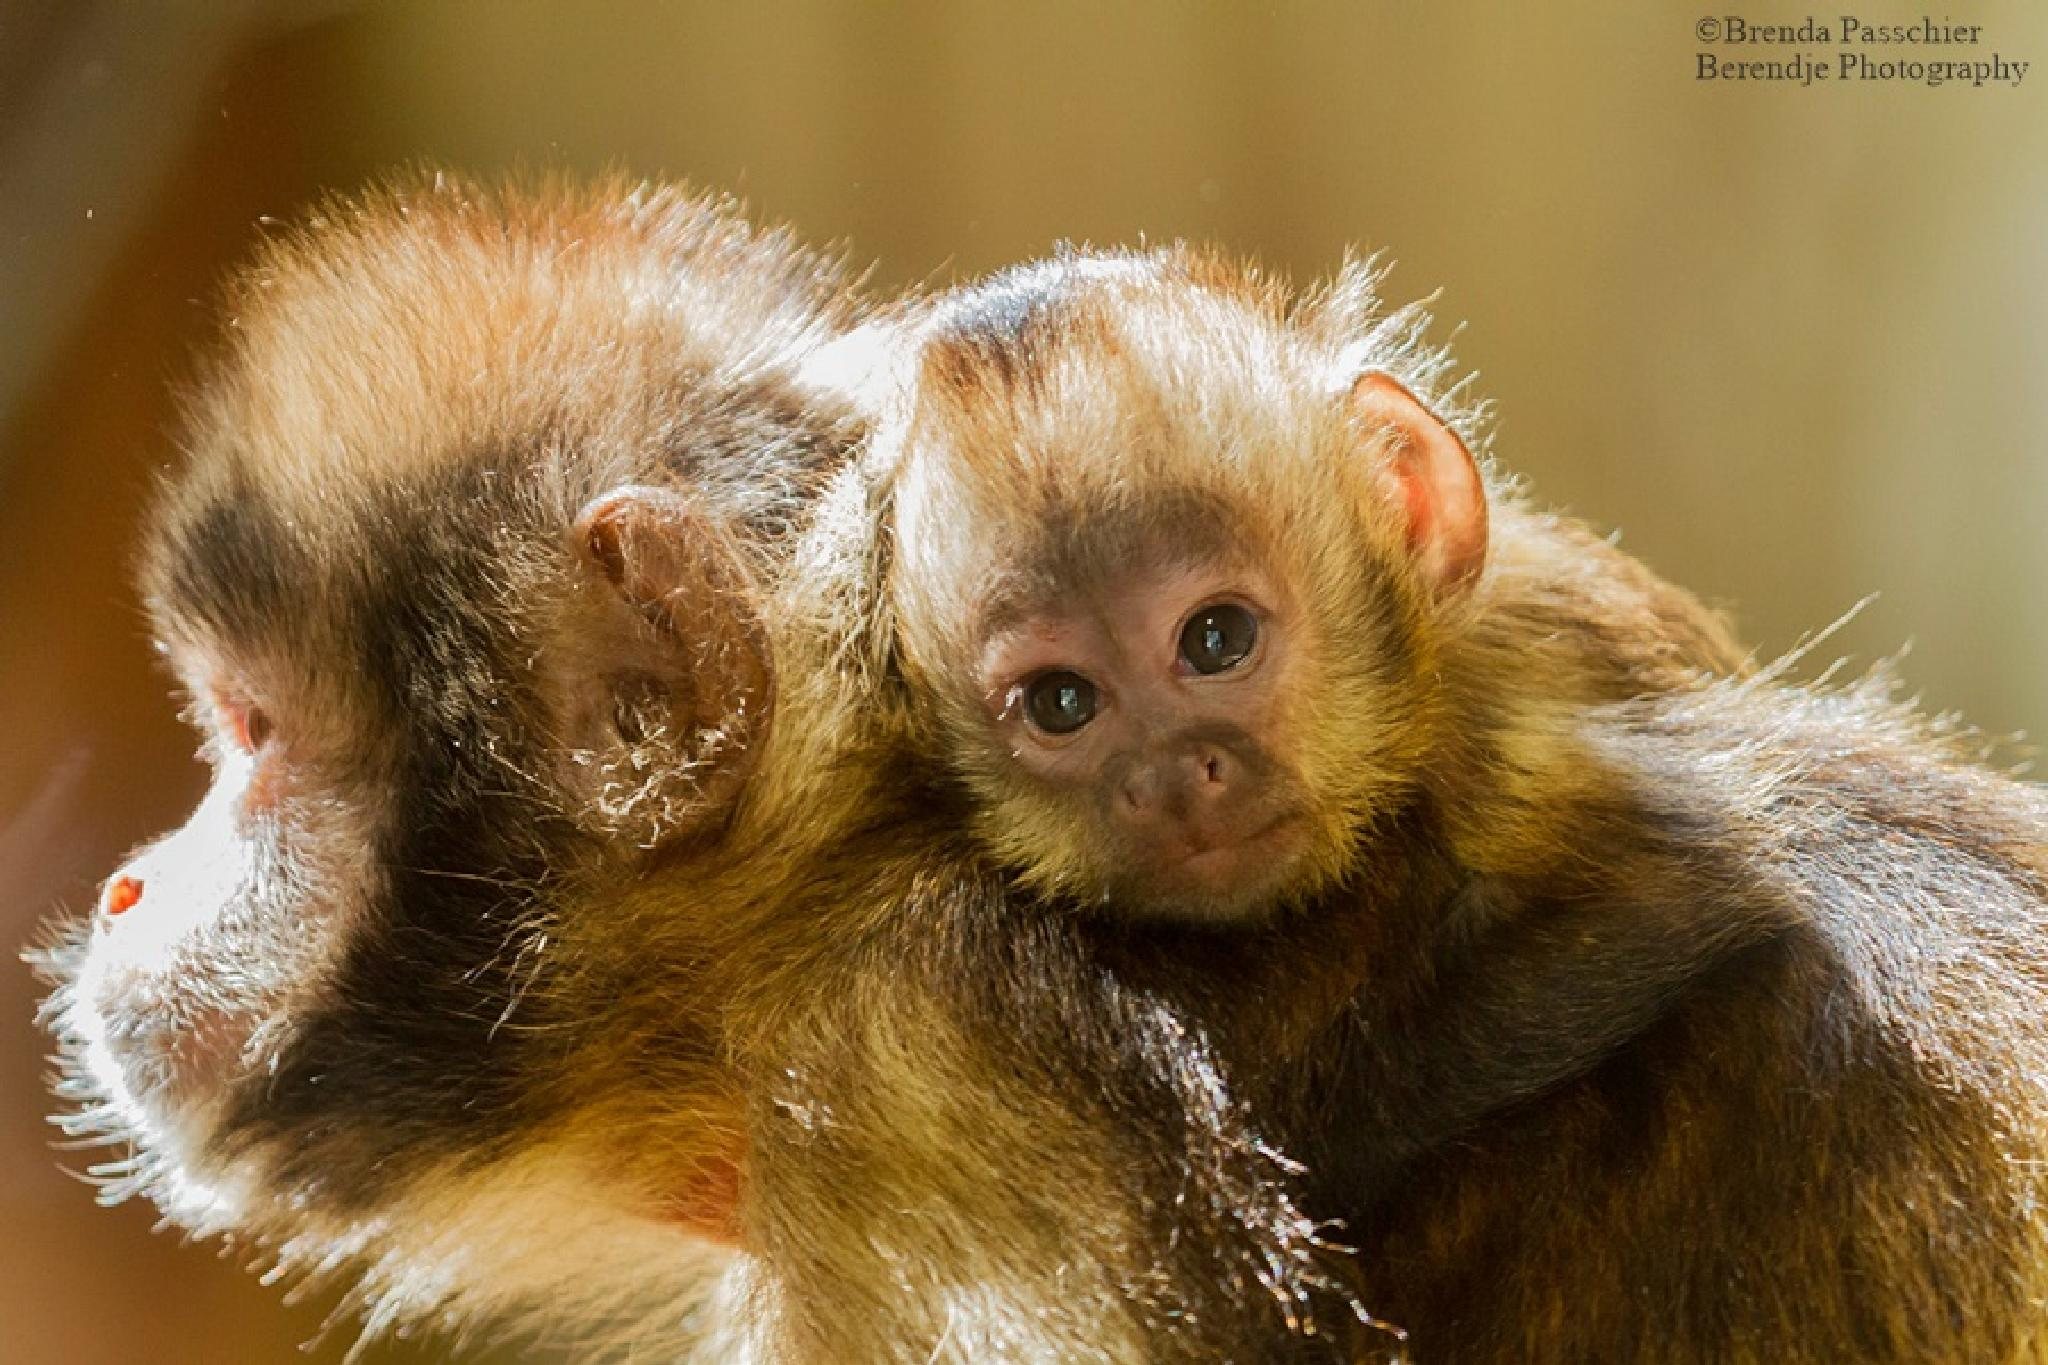 Yellow breasted capuchin by Brenda Passchier